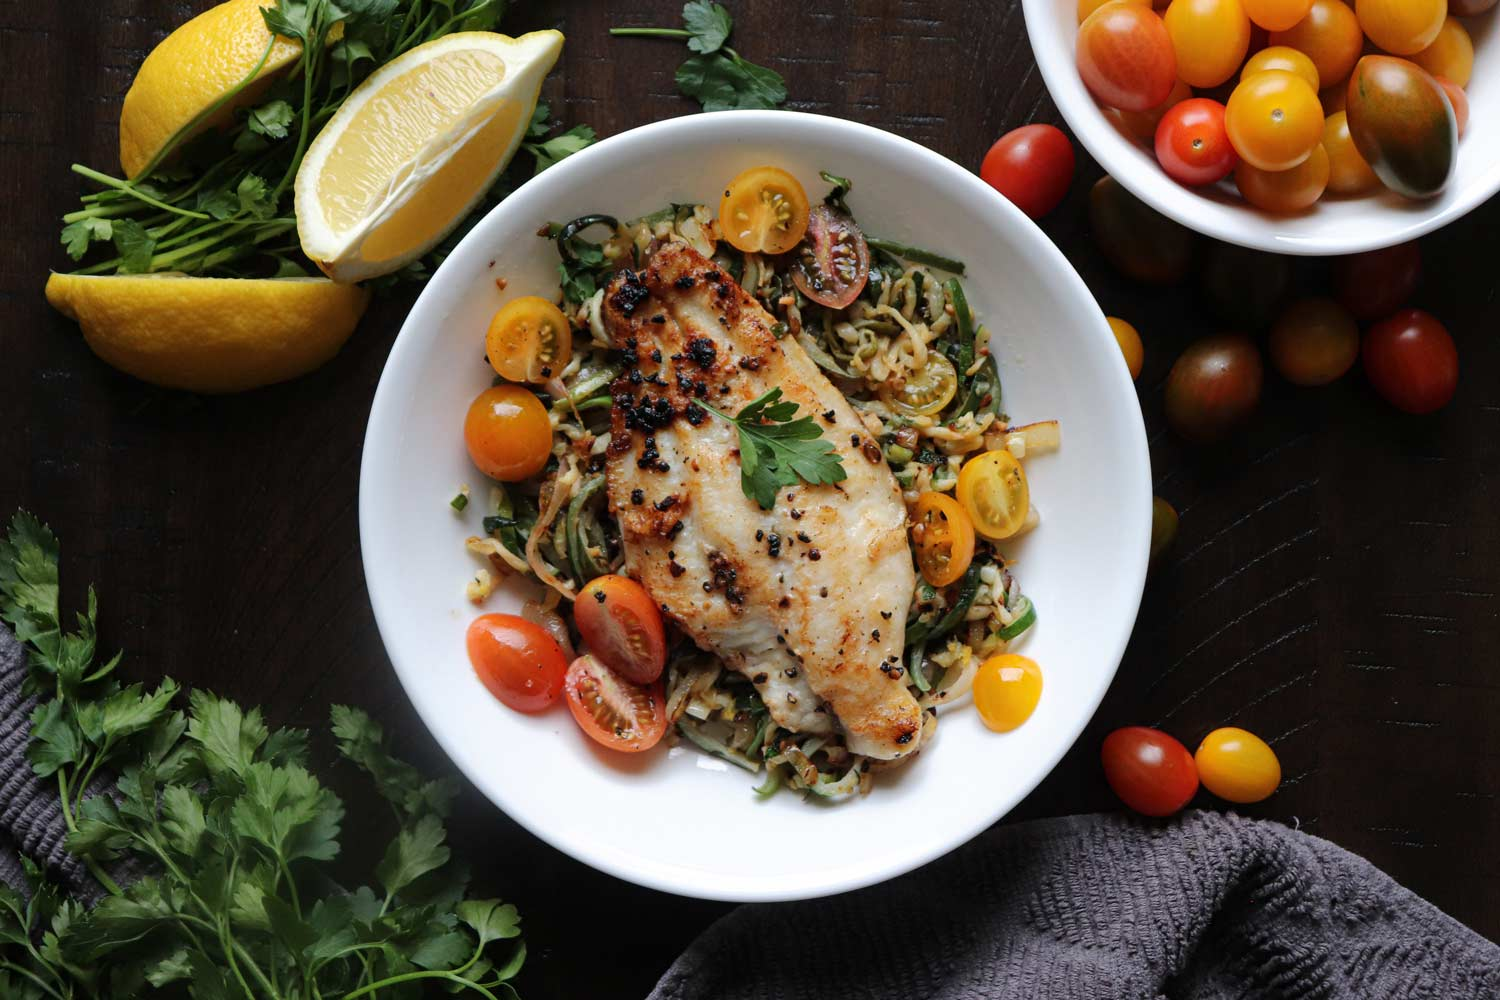 Pan-Seared Catfish with Lemony Zucchini Noodles